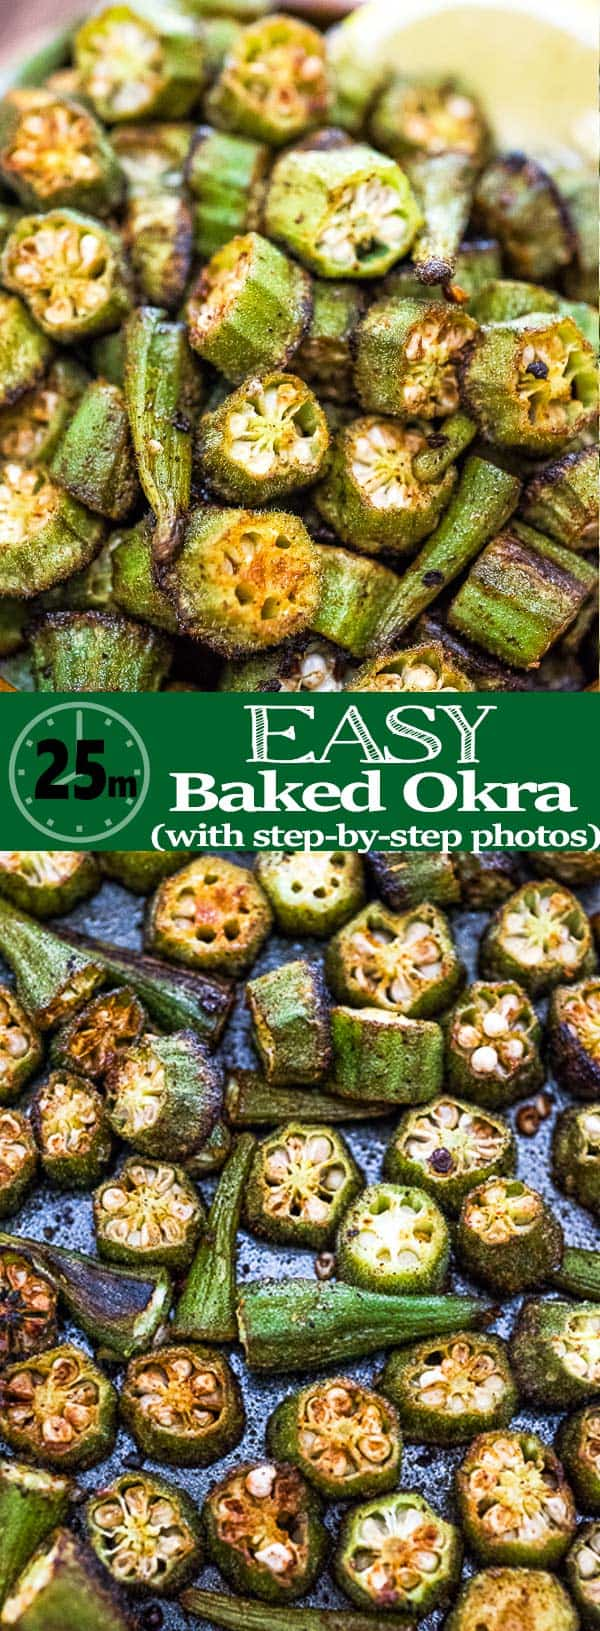 This is a simple, flavorful, and easy Baked Okra recipe. Seasoned with paprika, salt, and a pinch of cayenne, this okra makes a great snack or side dish.  ❤ COOKTORIA.COM #okra #vegetarian #snack #appetizer